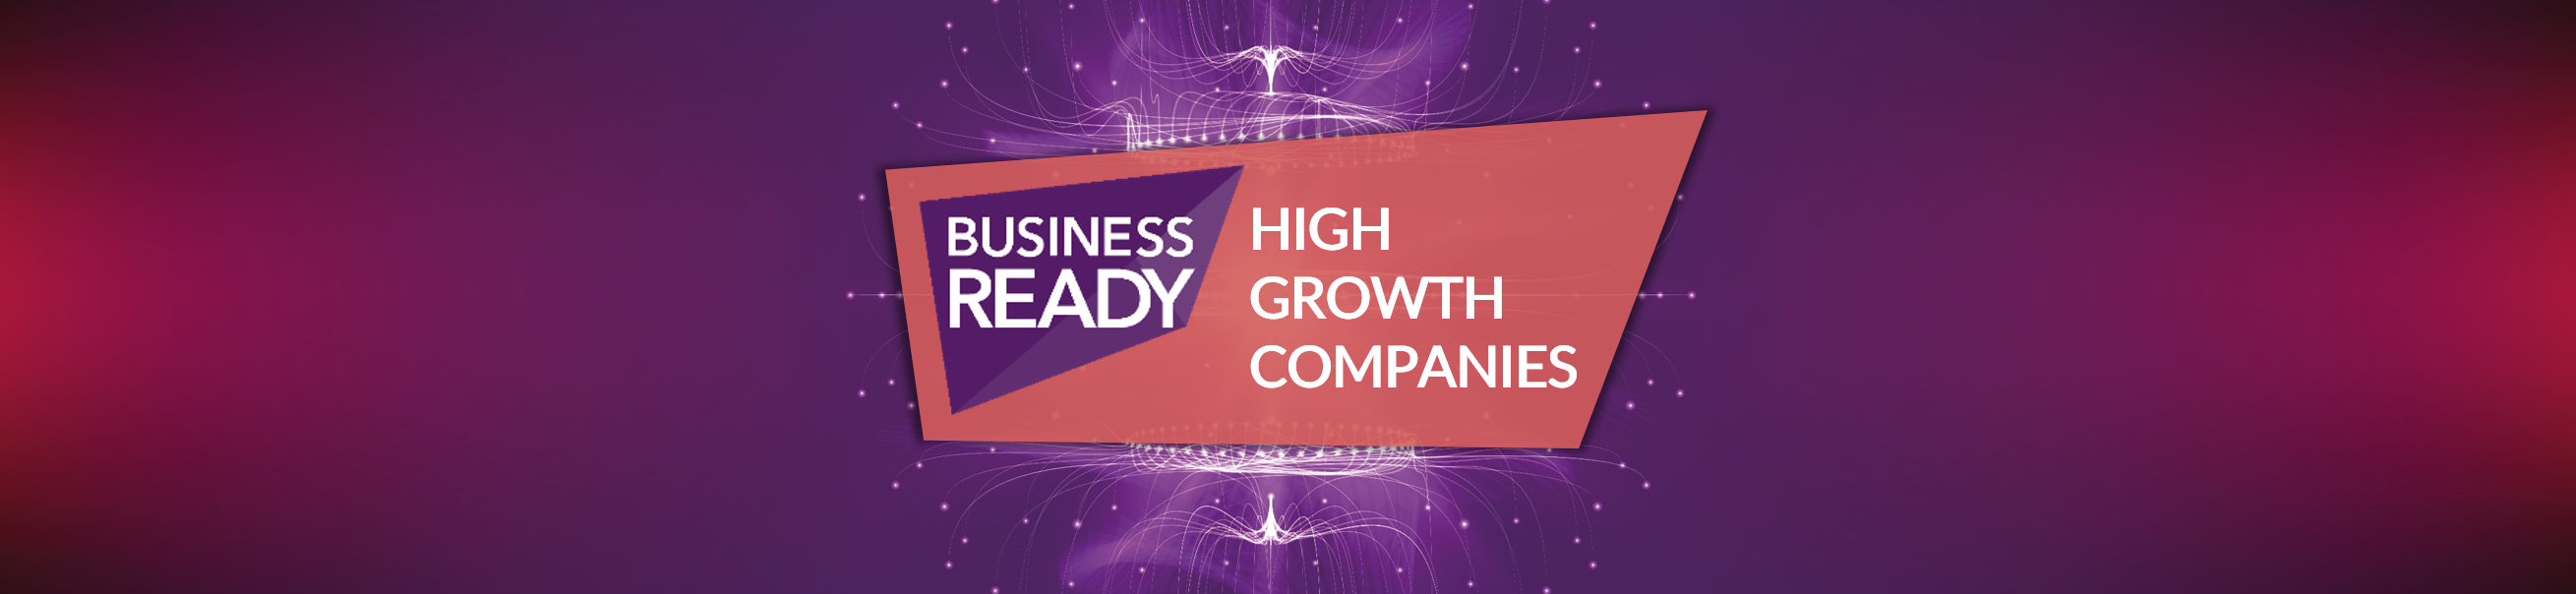 In Search of High Growth Companies